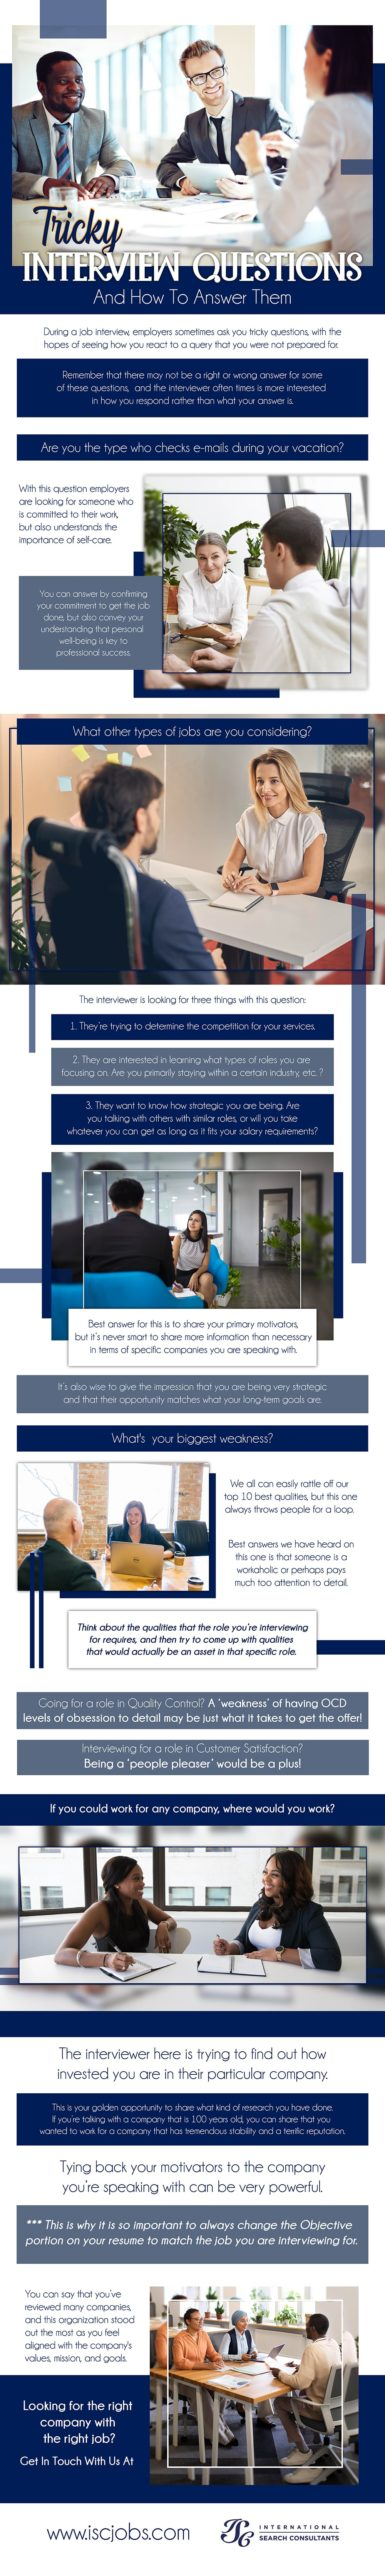 Tricky interview questions infographic